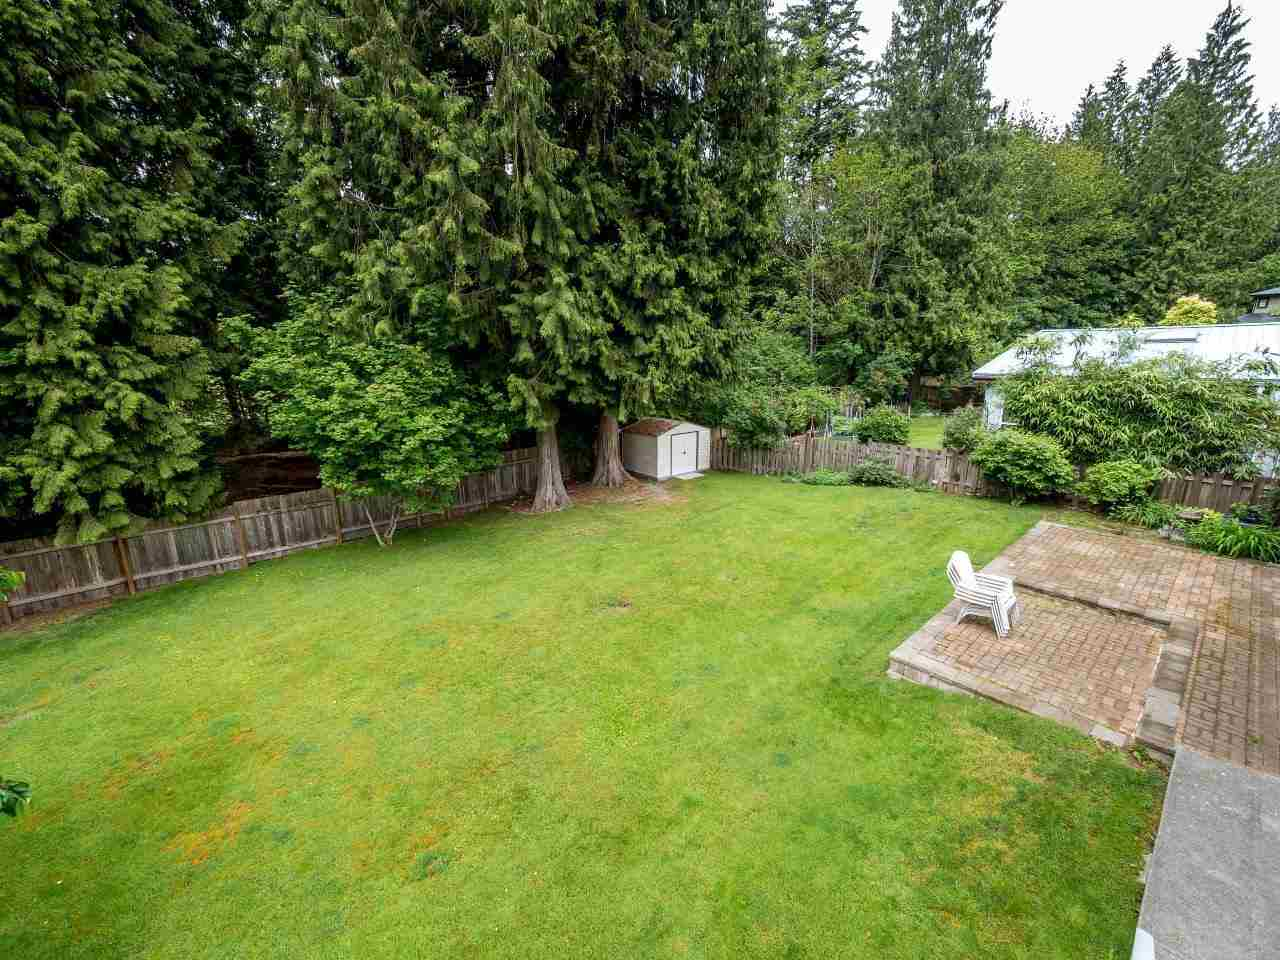 Photo 19: 40405 PERTH Drive in Squamish: Garibaldi Highlands House for sale : MLS(r) # R2069578